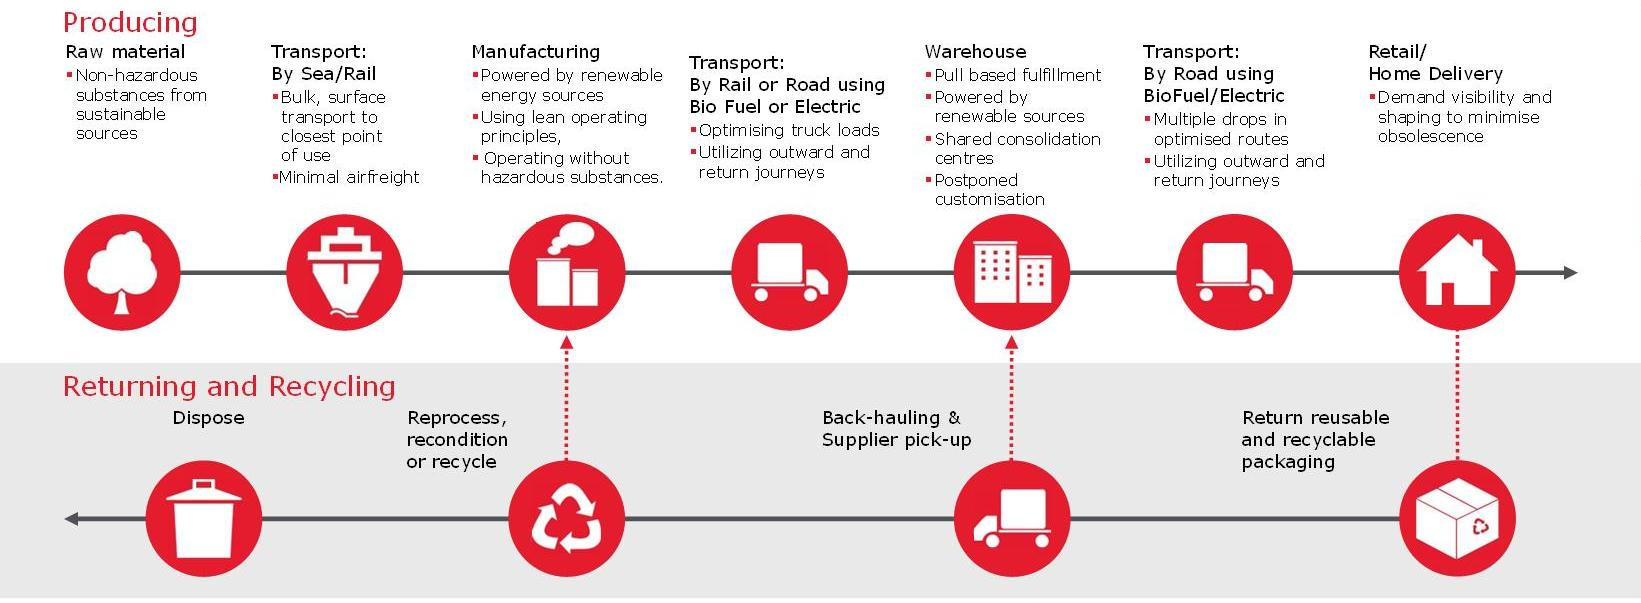 Figure 1: The Environmentally Conscious Supply Chain.